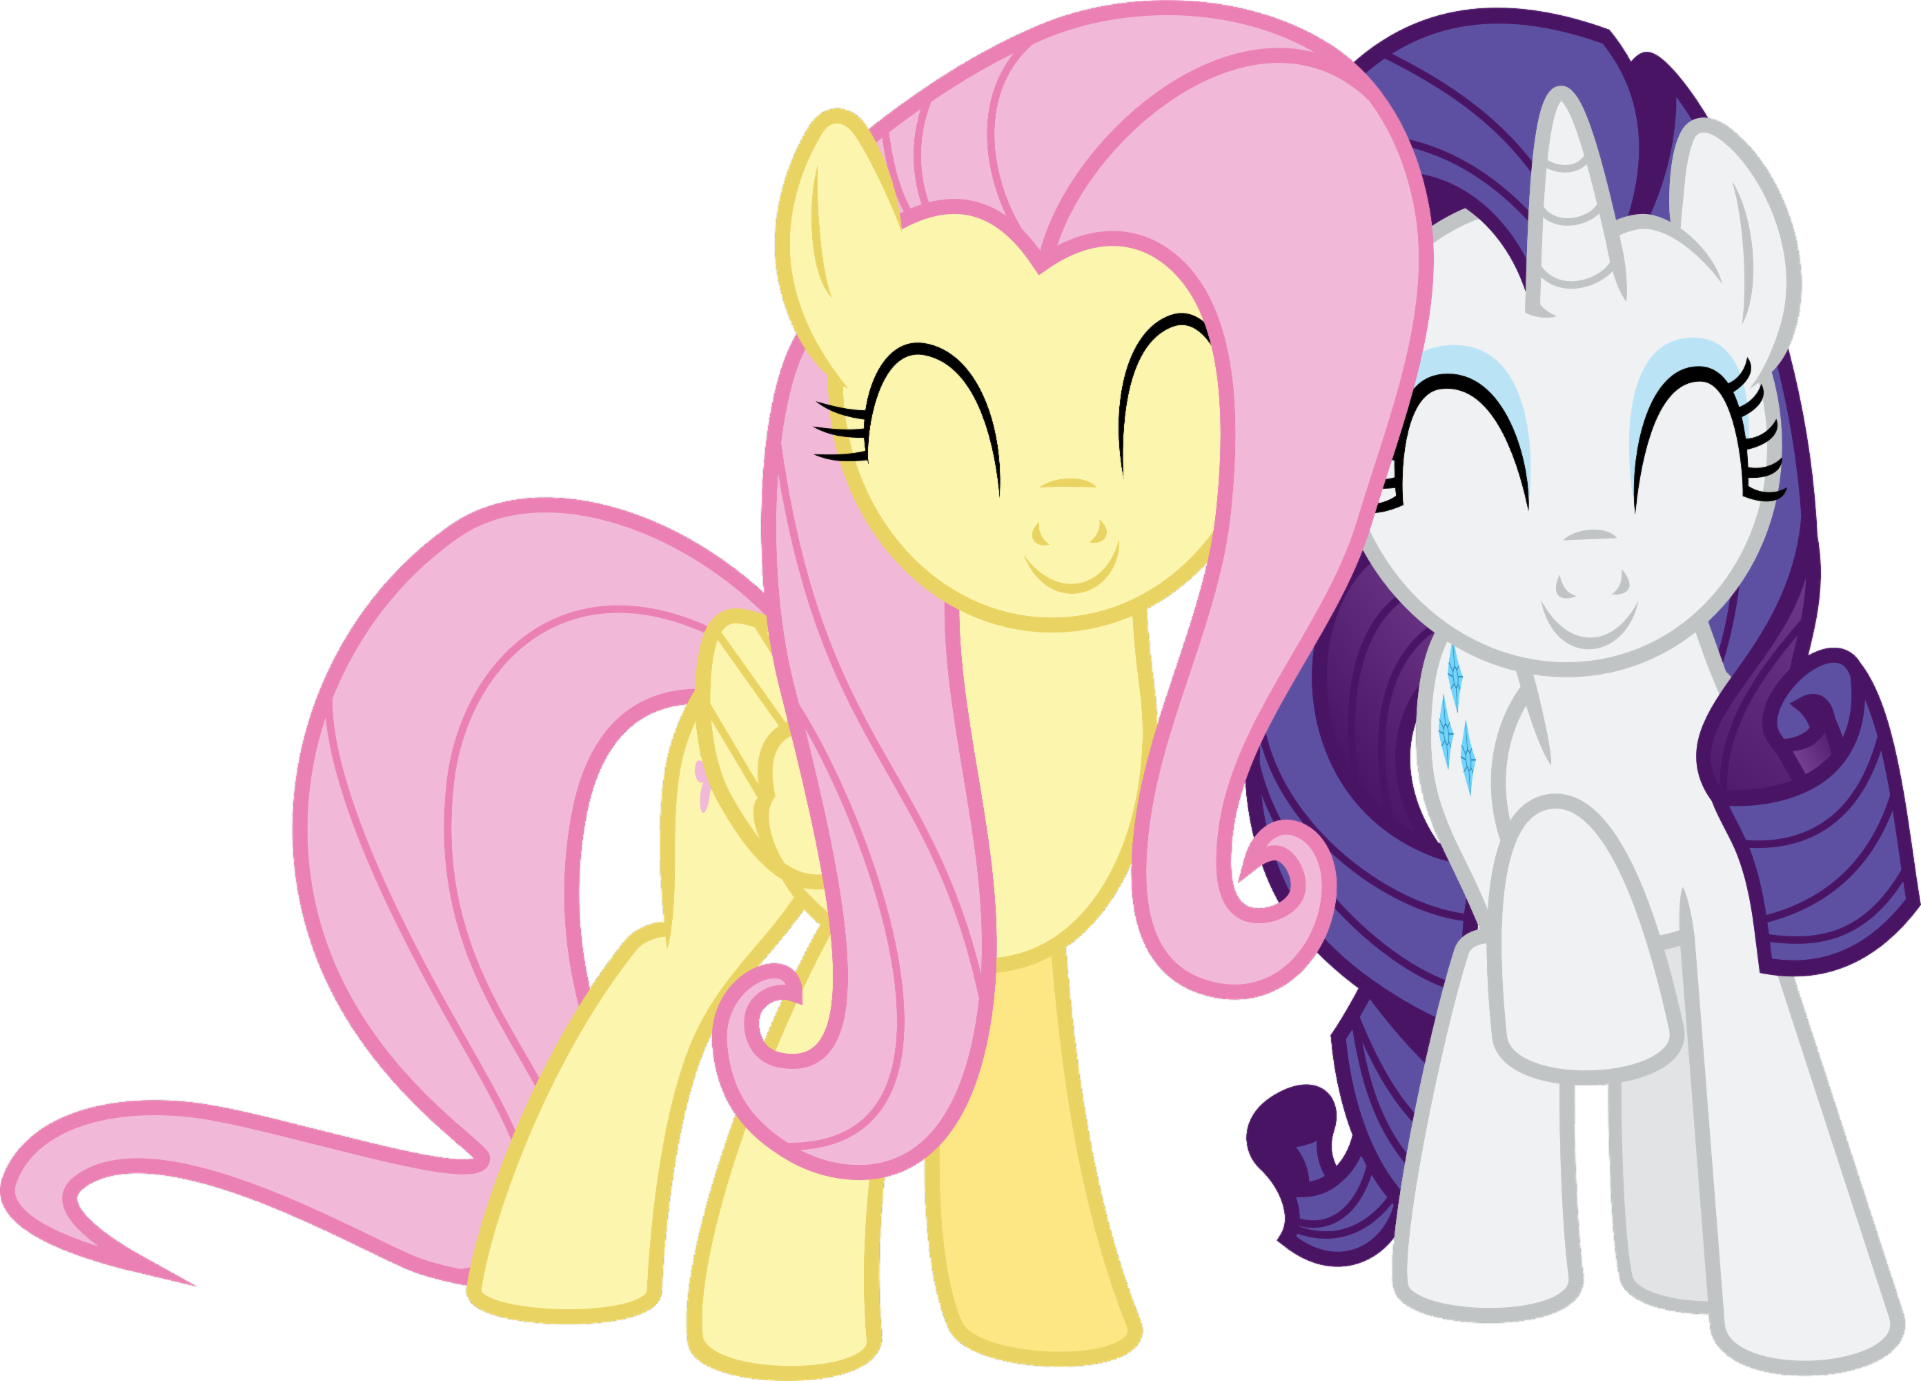 Who is your favourite mlp character?